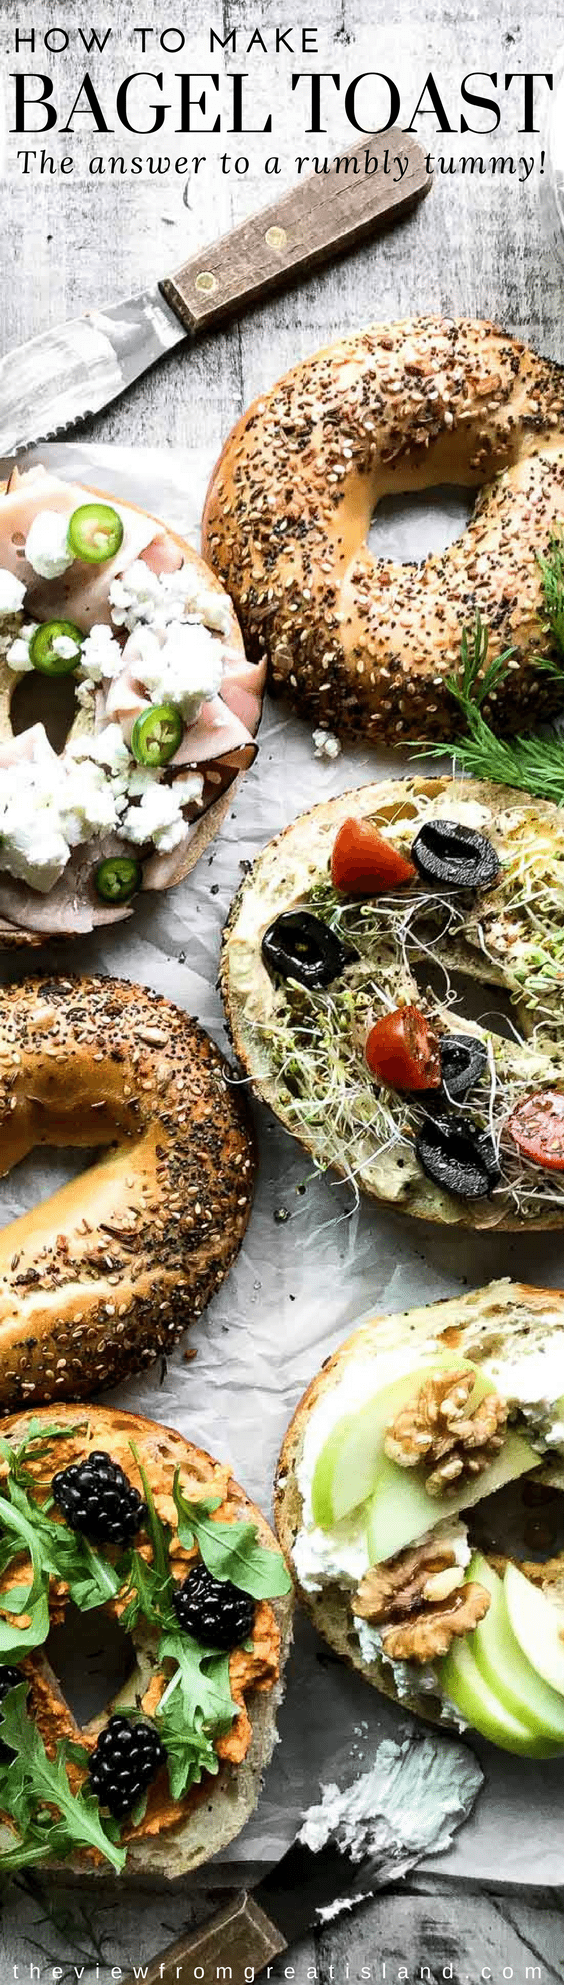 Bagel Toast ~ whether it's a Game Day bagel bar for a crowd, or a snack for one, these bagel toasts are hearty, healthy, and yummy ~ you can layer them up in a million delicious ways! #bagelbar #bageltoast #snacks #gameday #bagels #avocadotoast #breakfast #brunch #brunchbuffet #buffetrecipe #toast #sandwich #openfacedsandwich